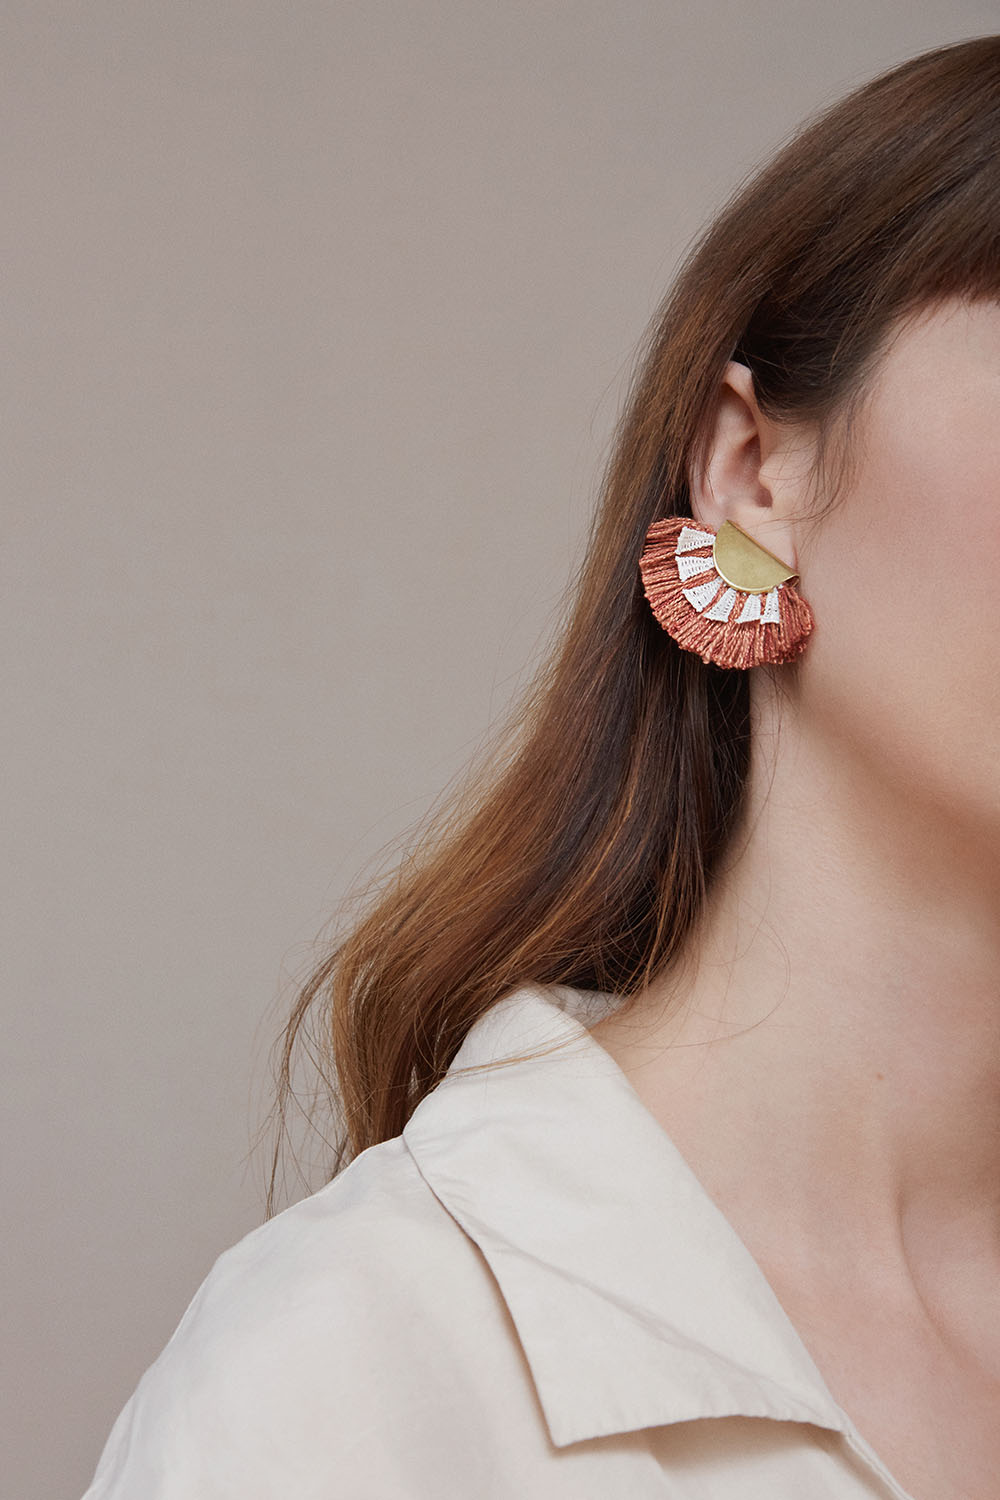 Matahari earrings (click here for details)